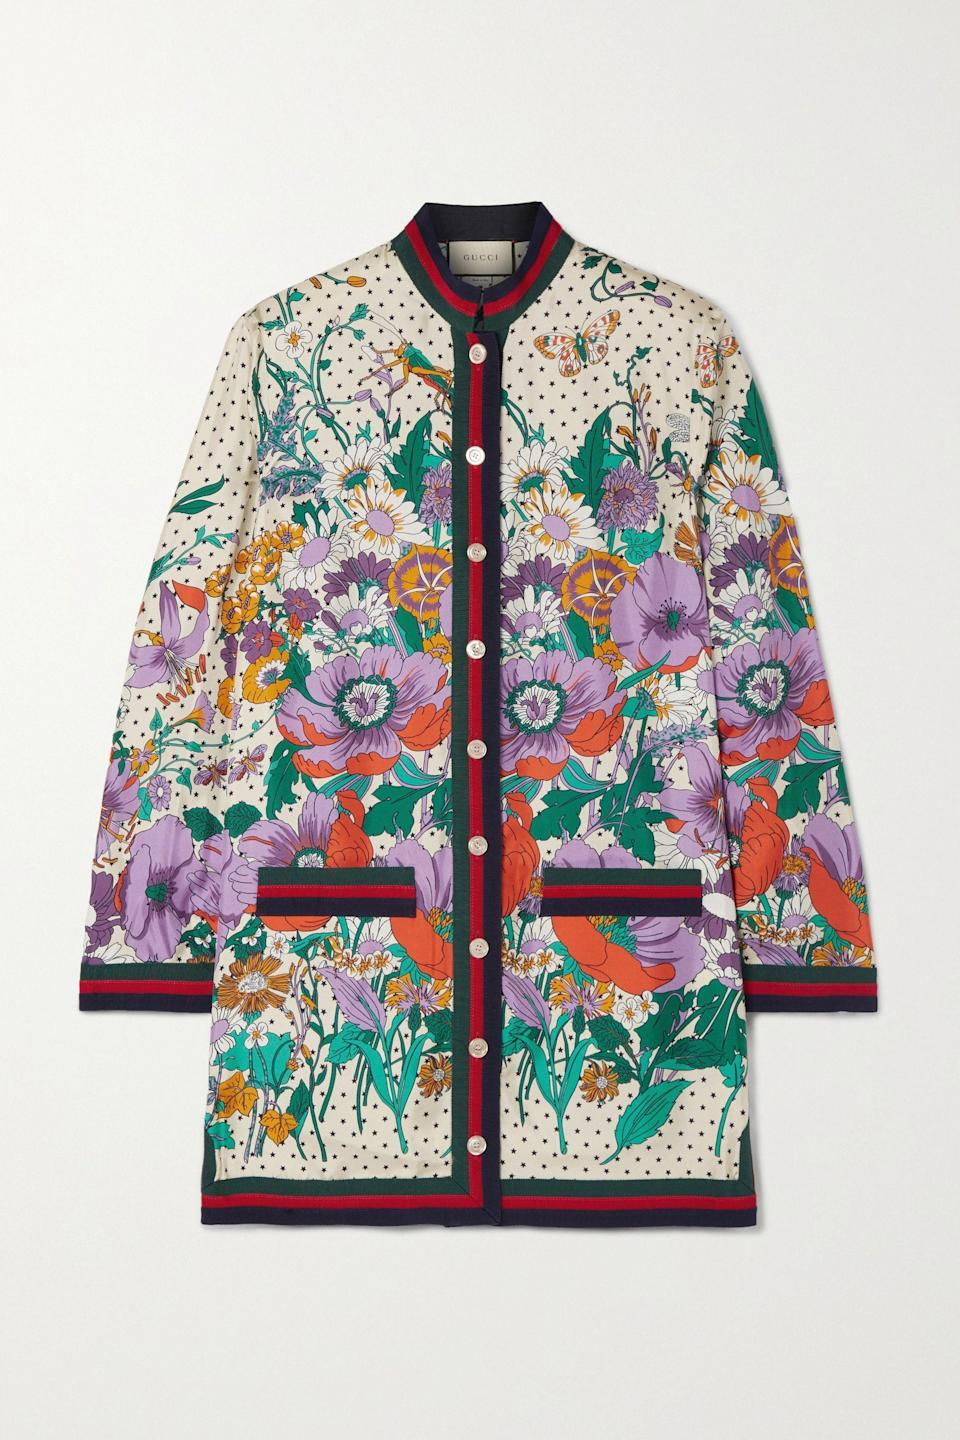 """<p><strong>Gucci</strong></p><p>net-a-porter.com</p><p><strong>$2600.00</strong></p><p><a href=""""https://go.redirectingat.com?id=74968X1596630&url=https%3A%2F%2Fwww.net-a-porter.com%2Fen-us%2Fshop%2Fproduct%2Fgucci%2Fgrosgrain-trimmed-printed-silk-twill-shirt%2F1062043&sref=https%3A%2F%2Fwww.marieclaire.com%2Ffashion%2Fg33324123%2Fsilk-printed-shirts%2F"""" rel=""""nofollow noopener"""" target=""""_blank"""" data-ylk=""""slk:Shop It"""" class=""""link rapid-noclick-resp"""">Shop It</a></p><p>This statement silk top showcases Gucci's iconic floral prints and heritage stripes. Consider this an investment piece that can be worn buttoned up as a shirt or worn open, over a T-shirt, like a jacket. </p>"""